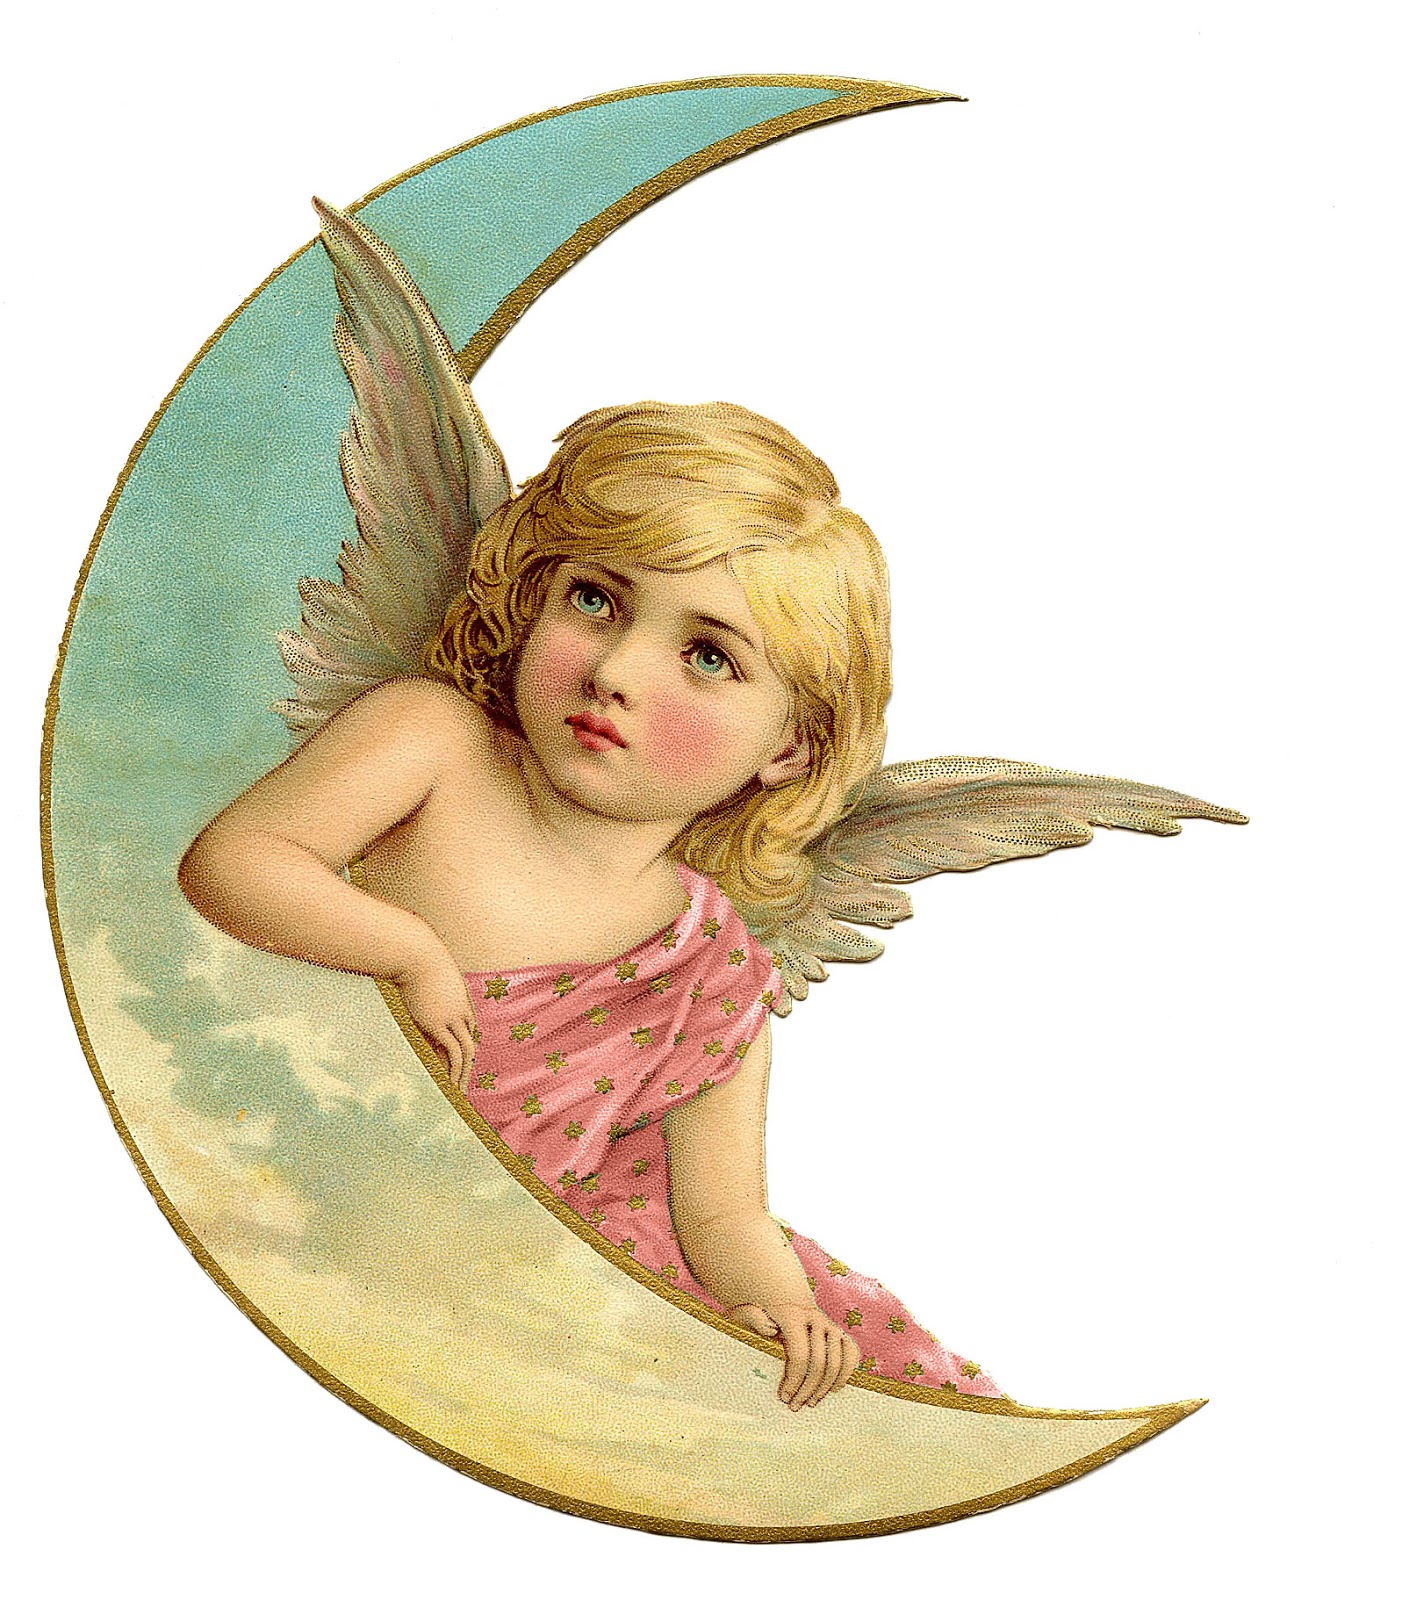 Vintage Christmas Image - Amazing Angel on Moon 2 - The Graphics Fairy